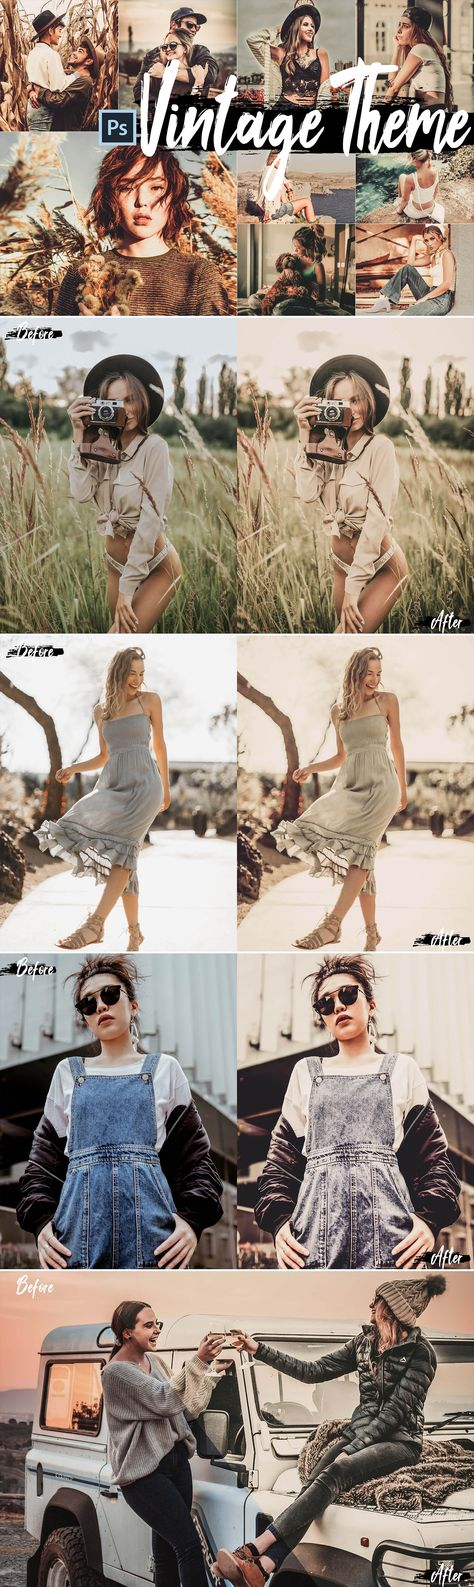 5 Vintage Actions, ACR and LUT presets INCLUDED: 5